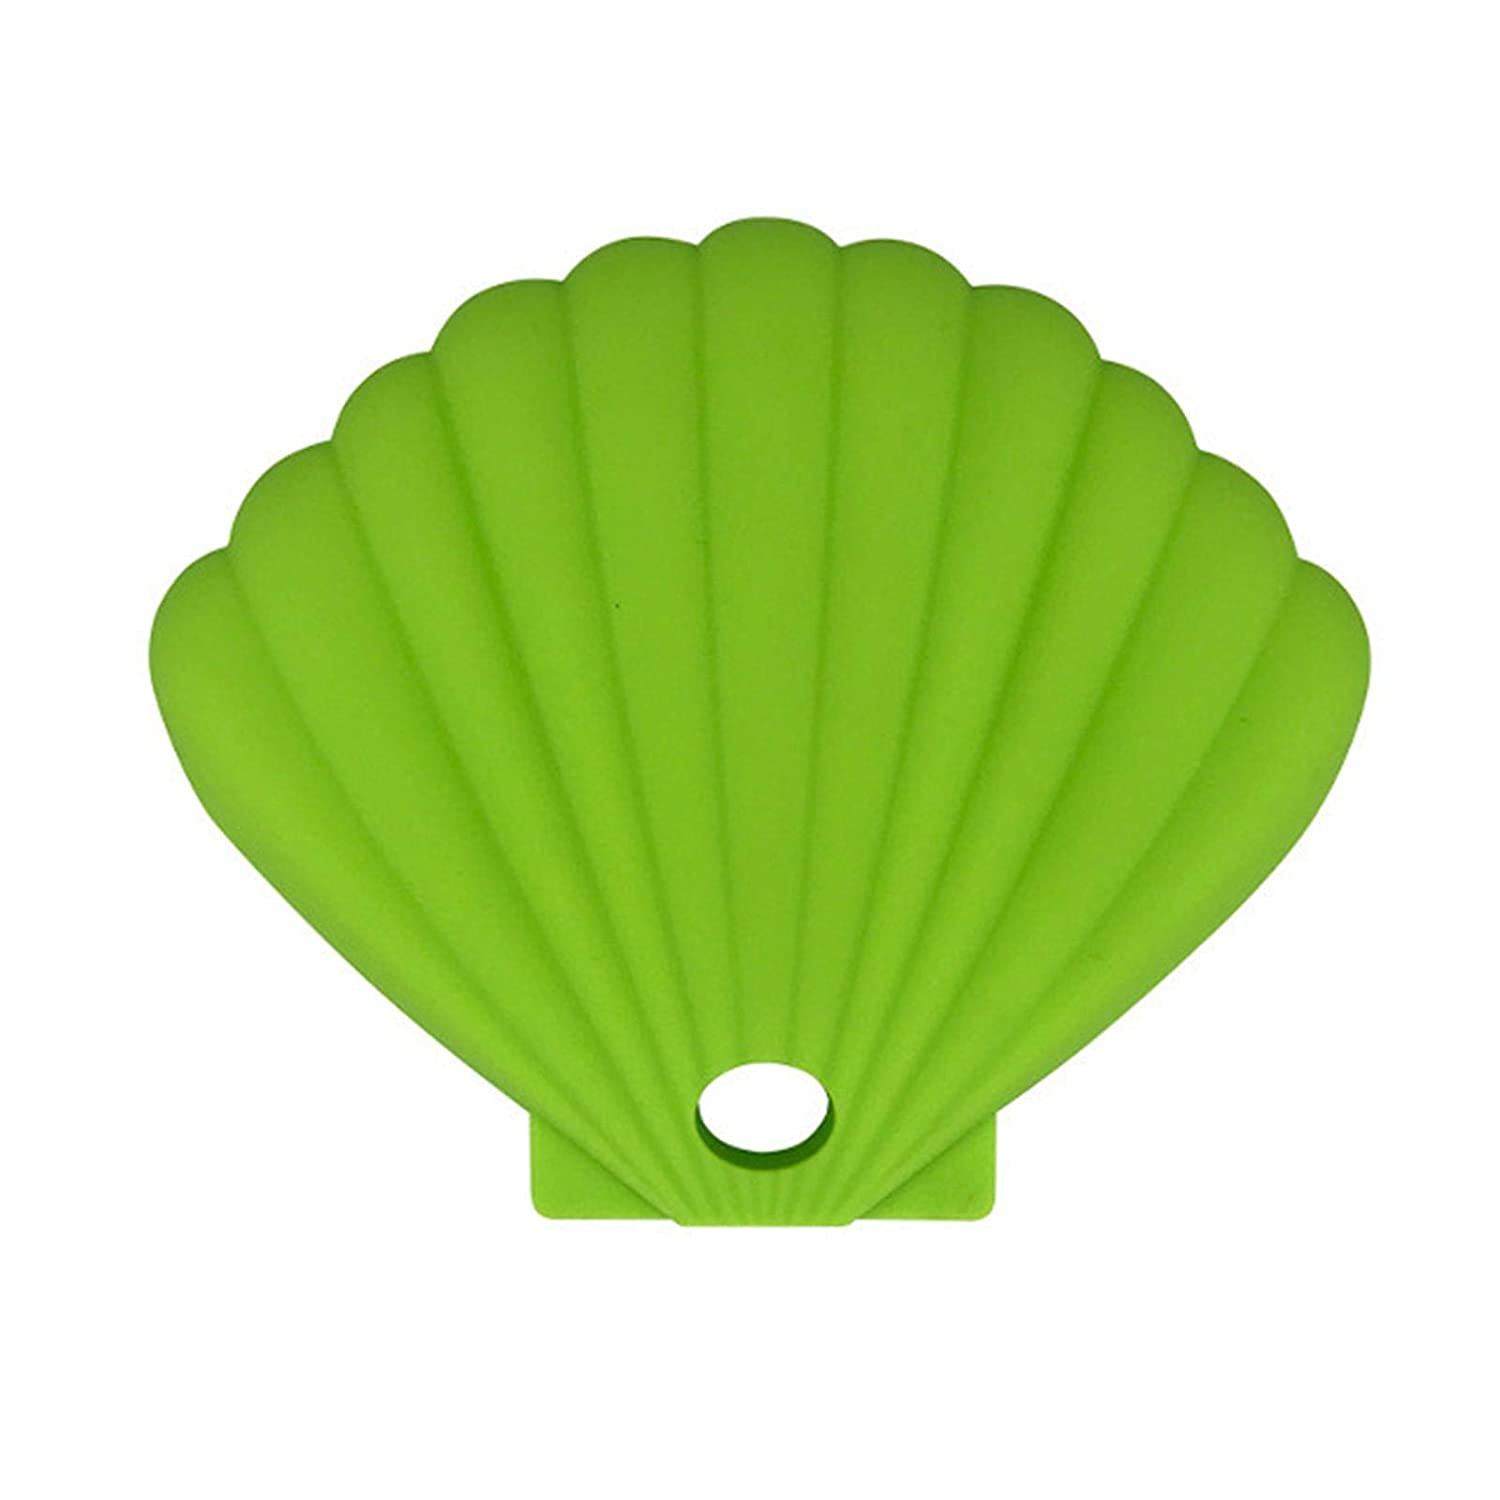 FIYRA Two Sold In One, Face Protection Storage Bag Dustproof And Waterproof, Easy To Disinfect And Reuse (light green)